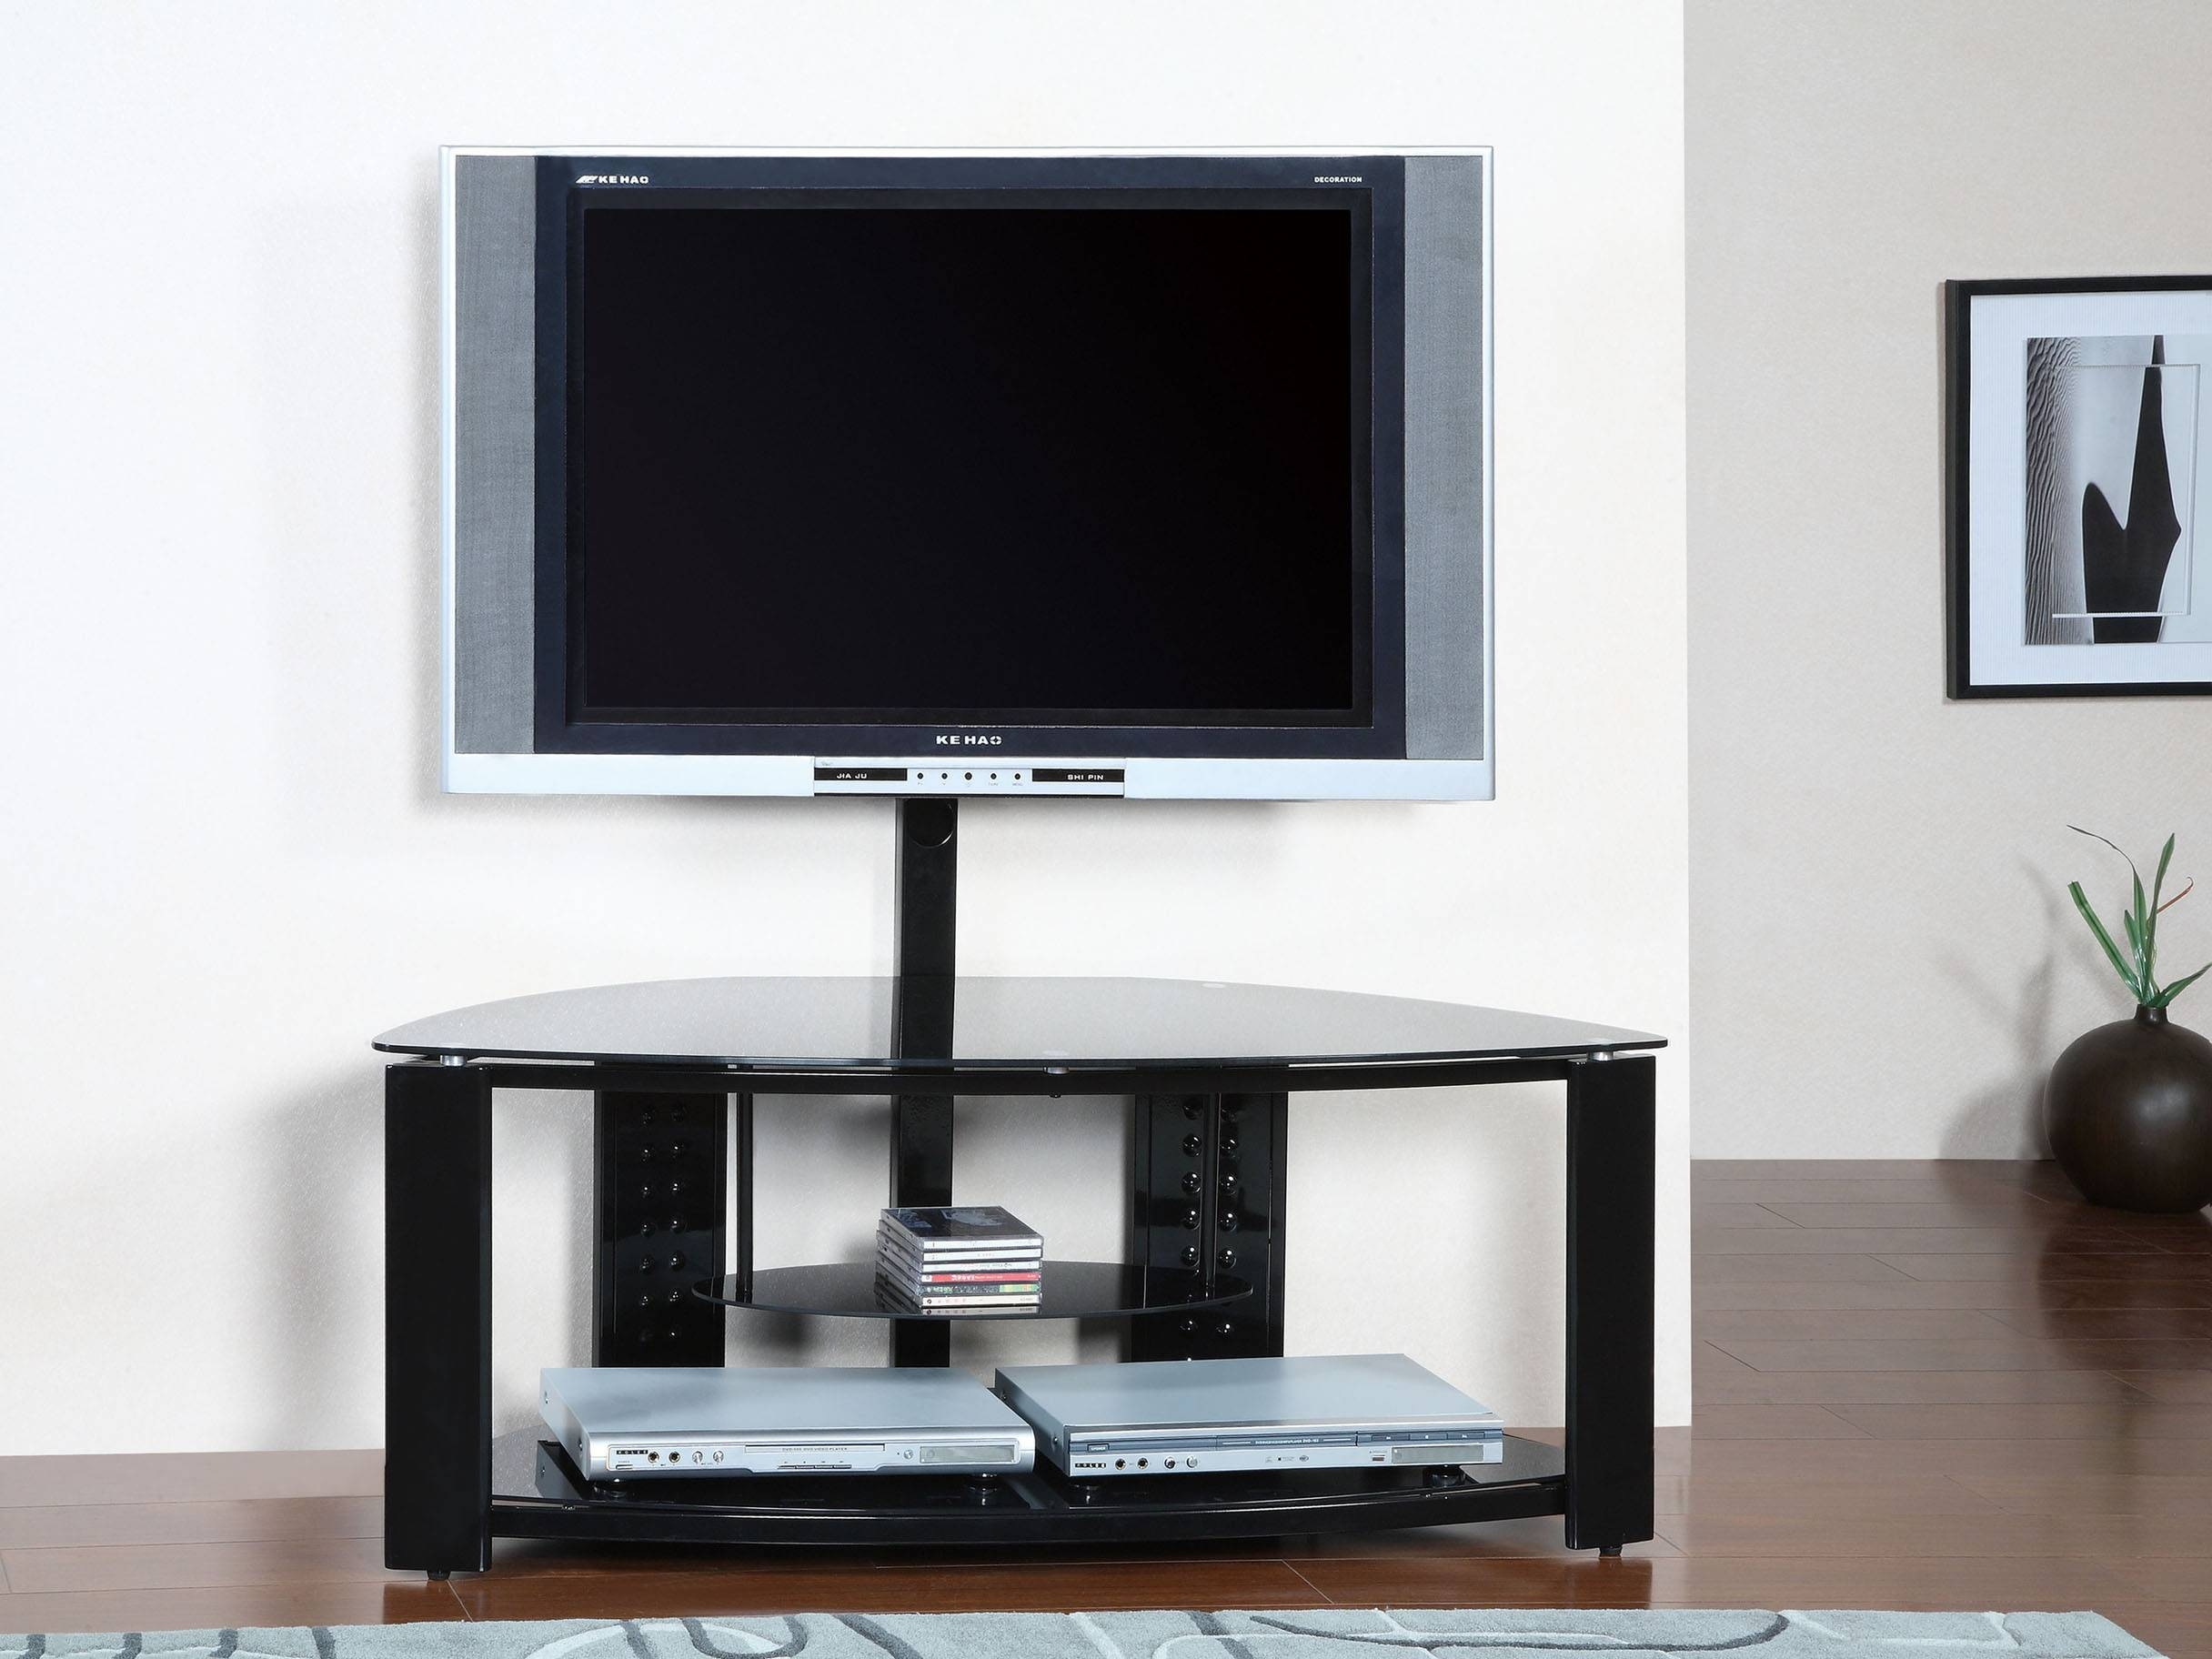 Furniture : Nice Short Tv Stands Designs - Evoninestore pertaining to Triangular Tv Stands (Image 7 of 15)